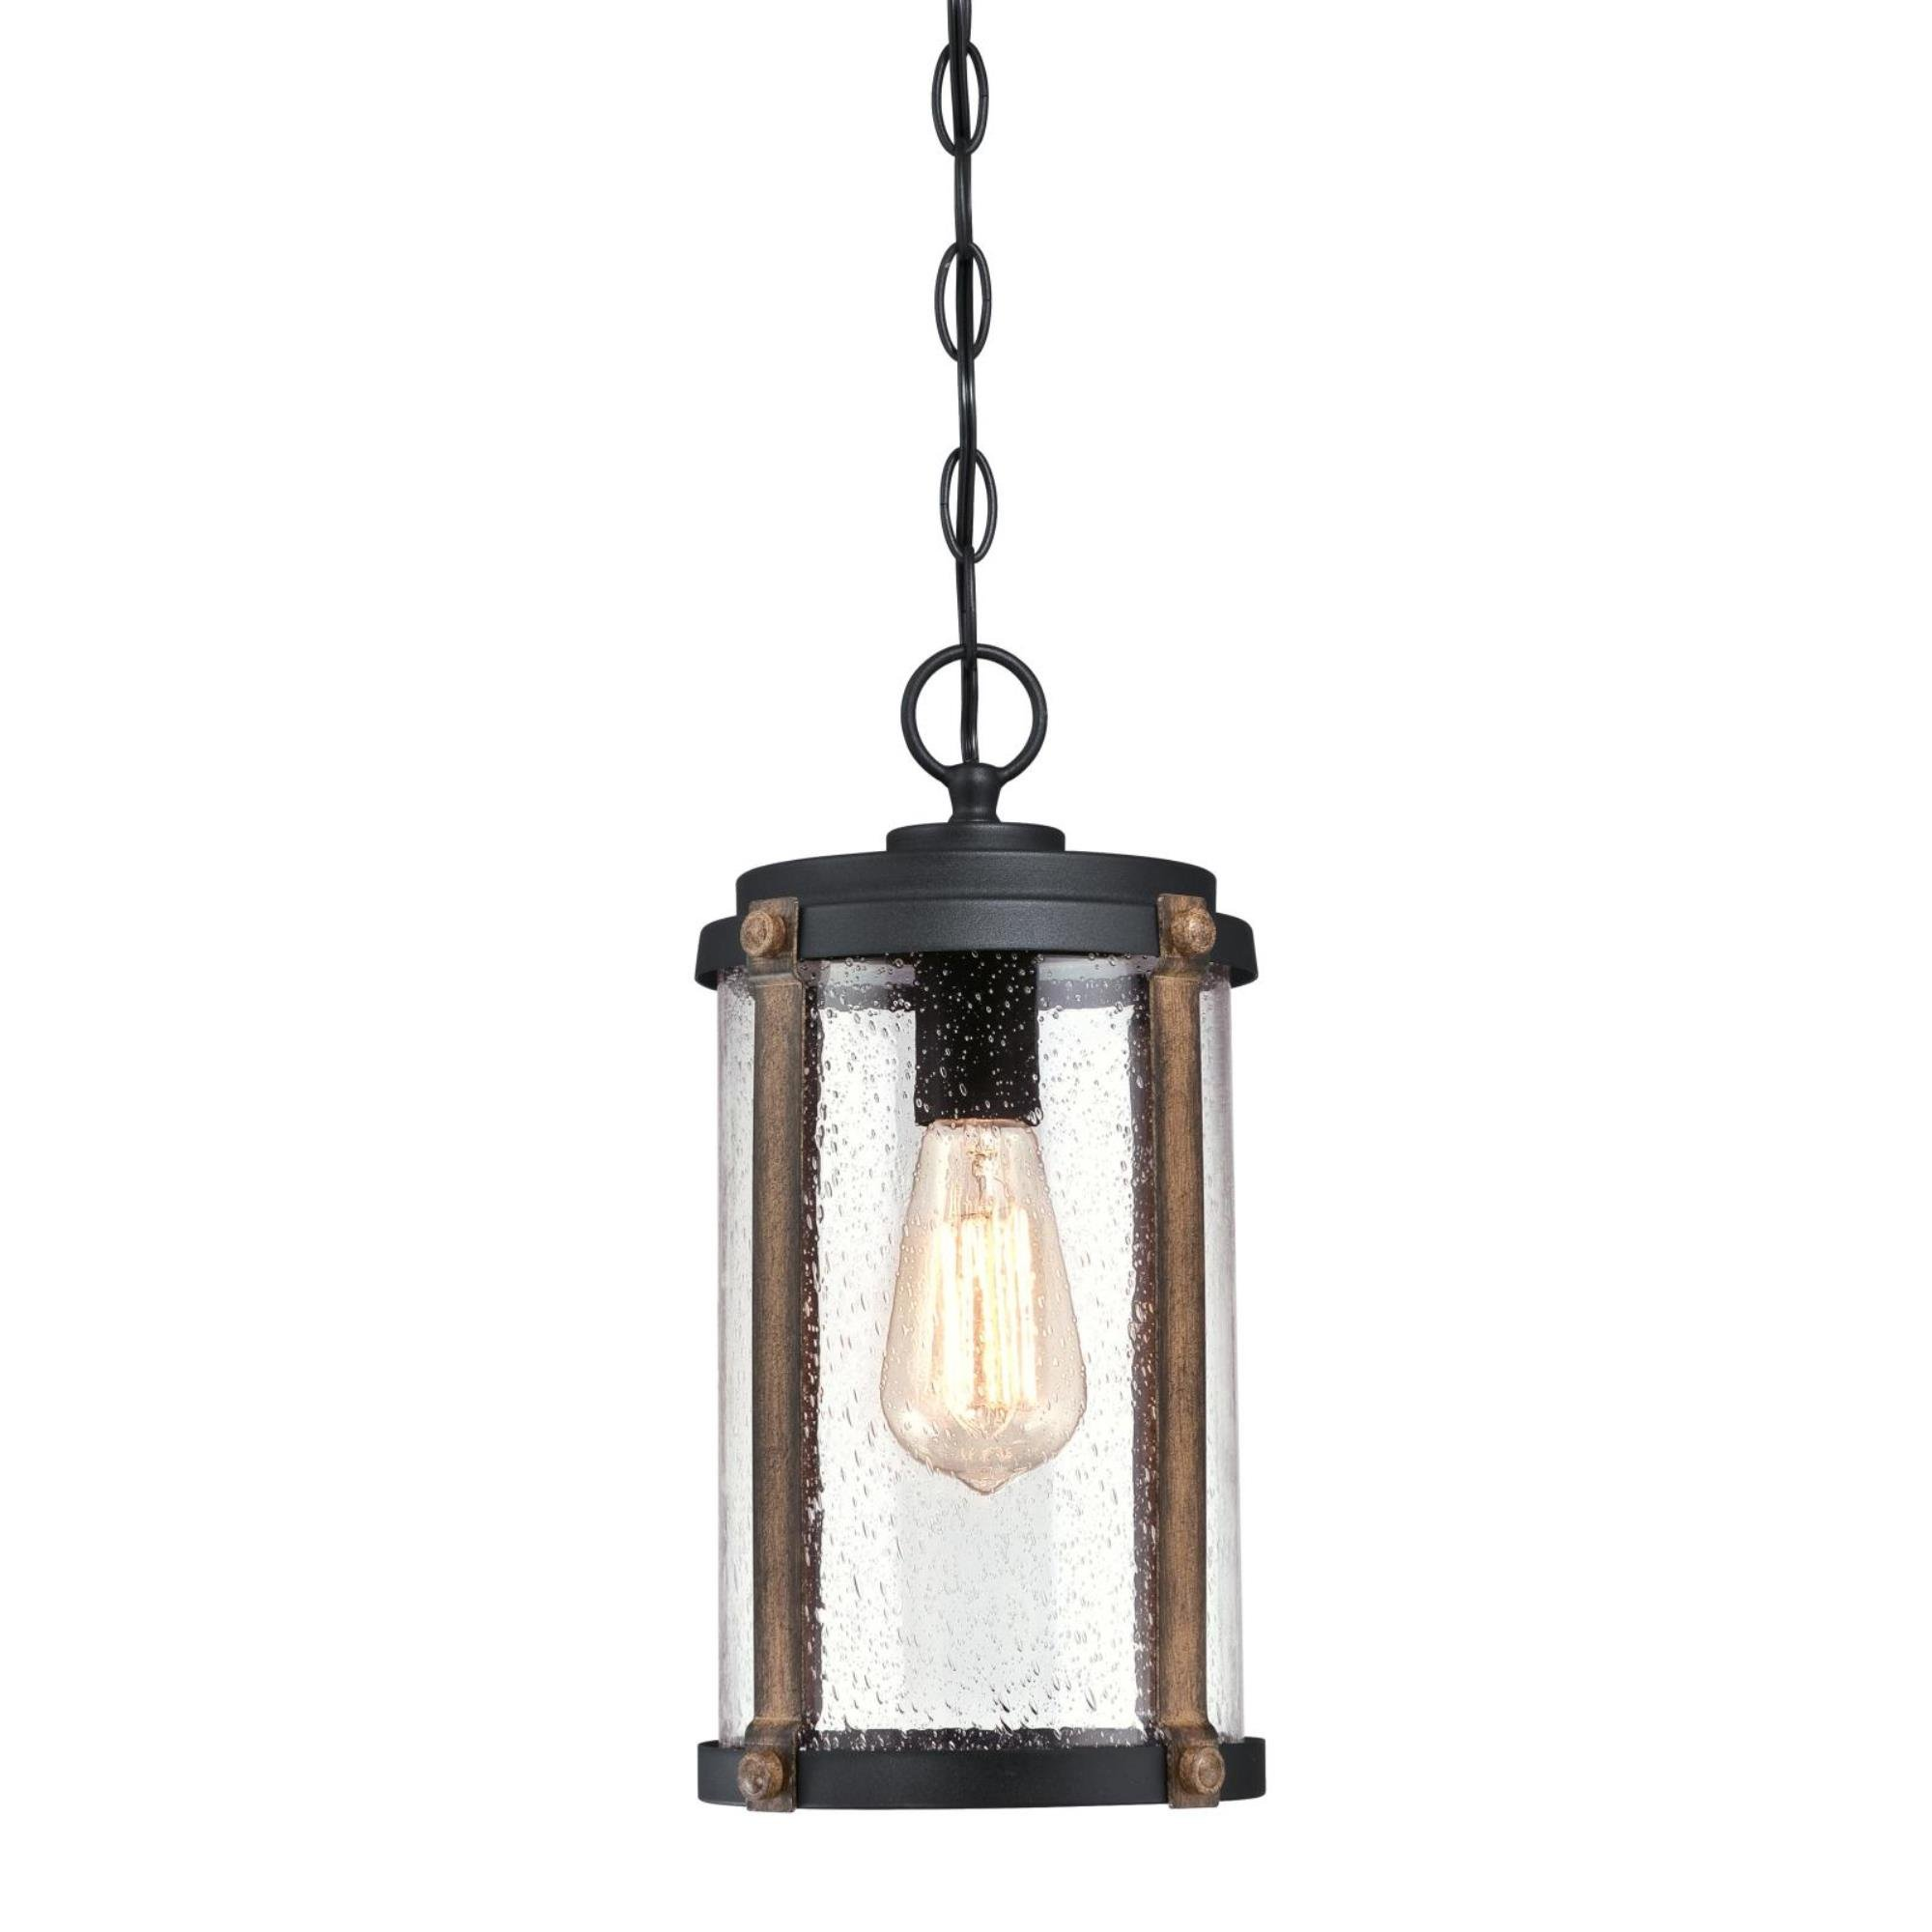 Westinghouse Lighting 6358900 Armin One-Light, Textured Black Finish with Barnwood Accents and Clear Seeded Glass OUTDOOR PENDANT, by Westinghouse Lighting